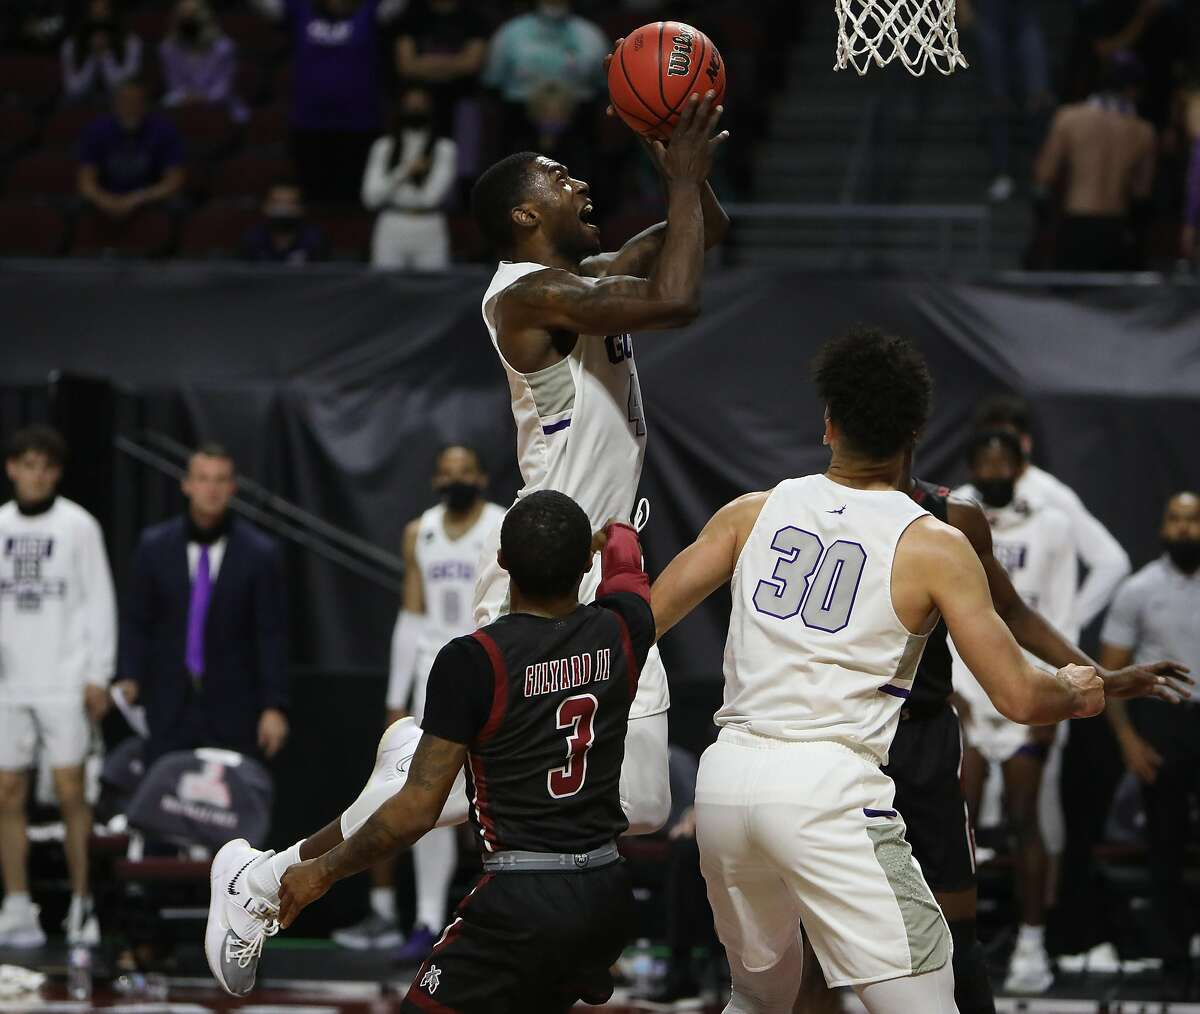 LAS VEGAS, NEVADA - MARCH 13: Oscar Frayer #4 of the Grand Canyon Lopes goes to the rim against the New Mexico State Aggies during the championship game of the Western Athletic Conference basketball tournament at the Orleans Arena on March 13, 2021 in Las Vegas, Nevada. The Lopes defeated the Aggies 74-56. (Photo by Joe Buglewicz/Getty Images)